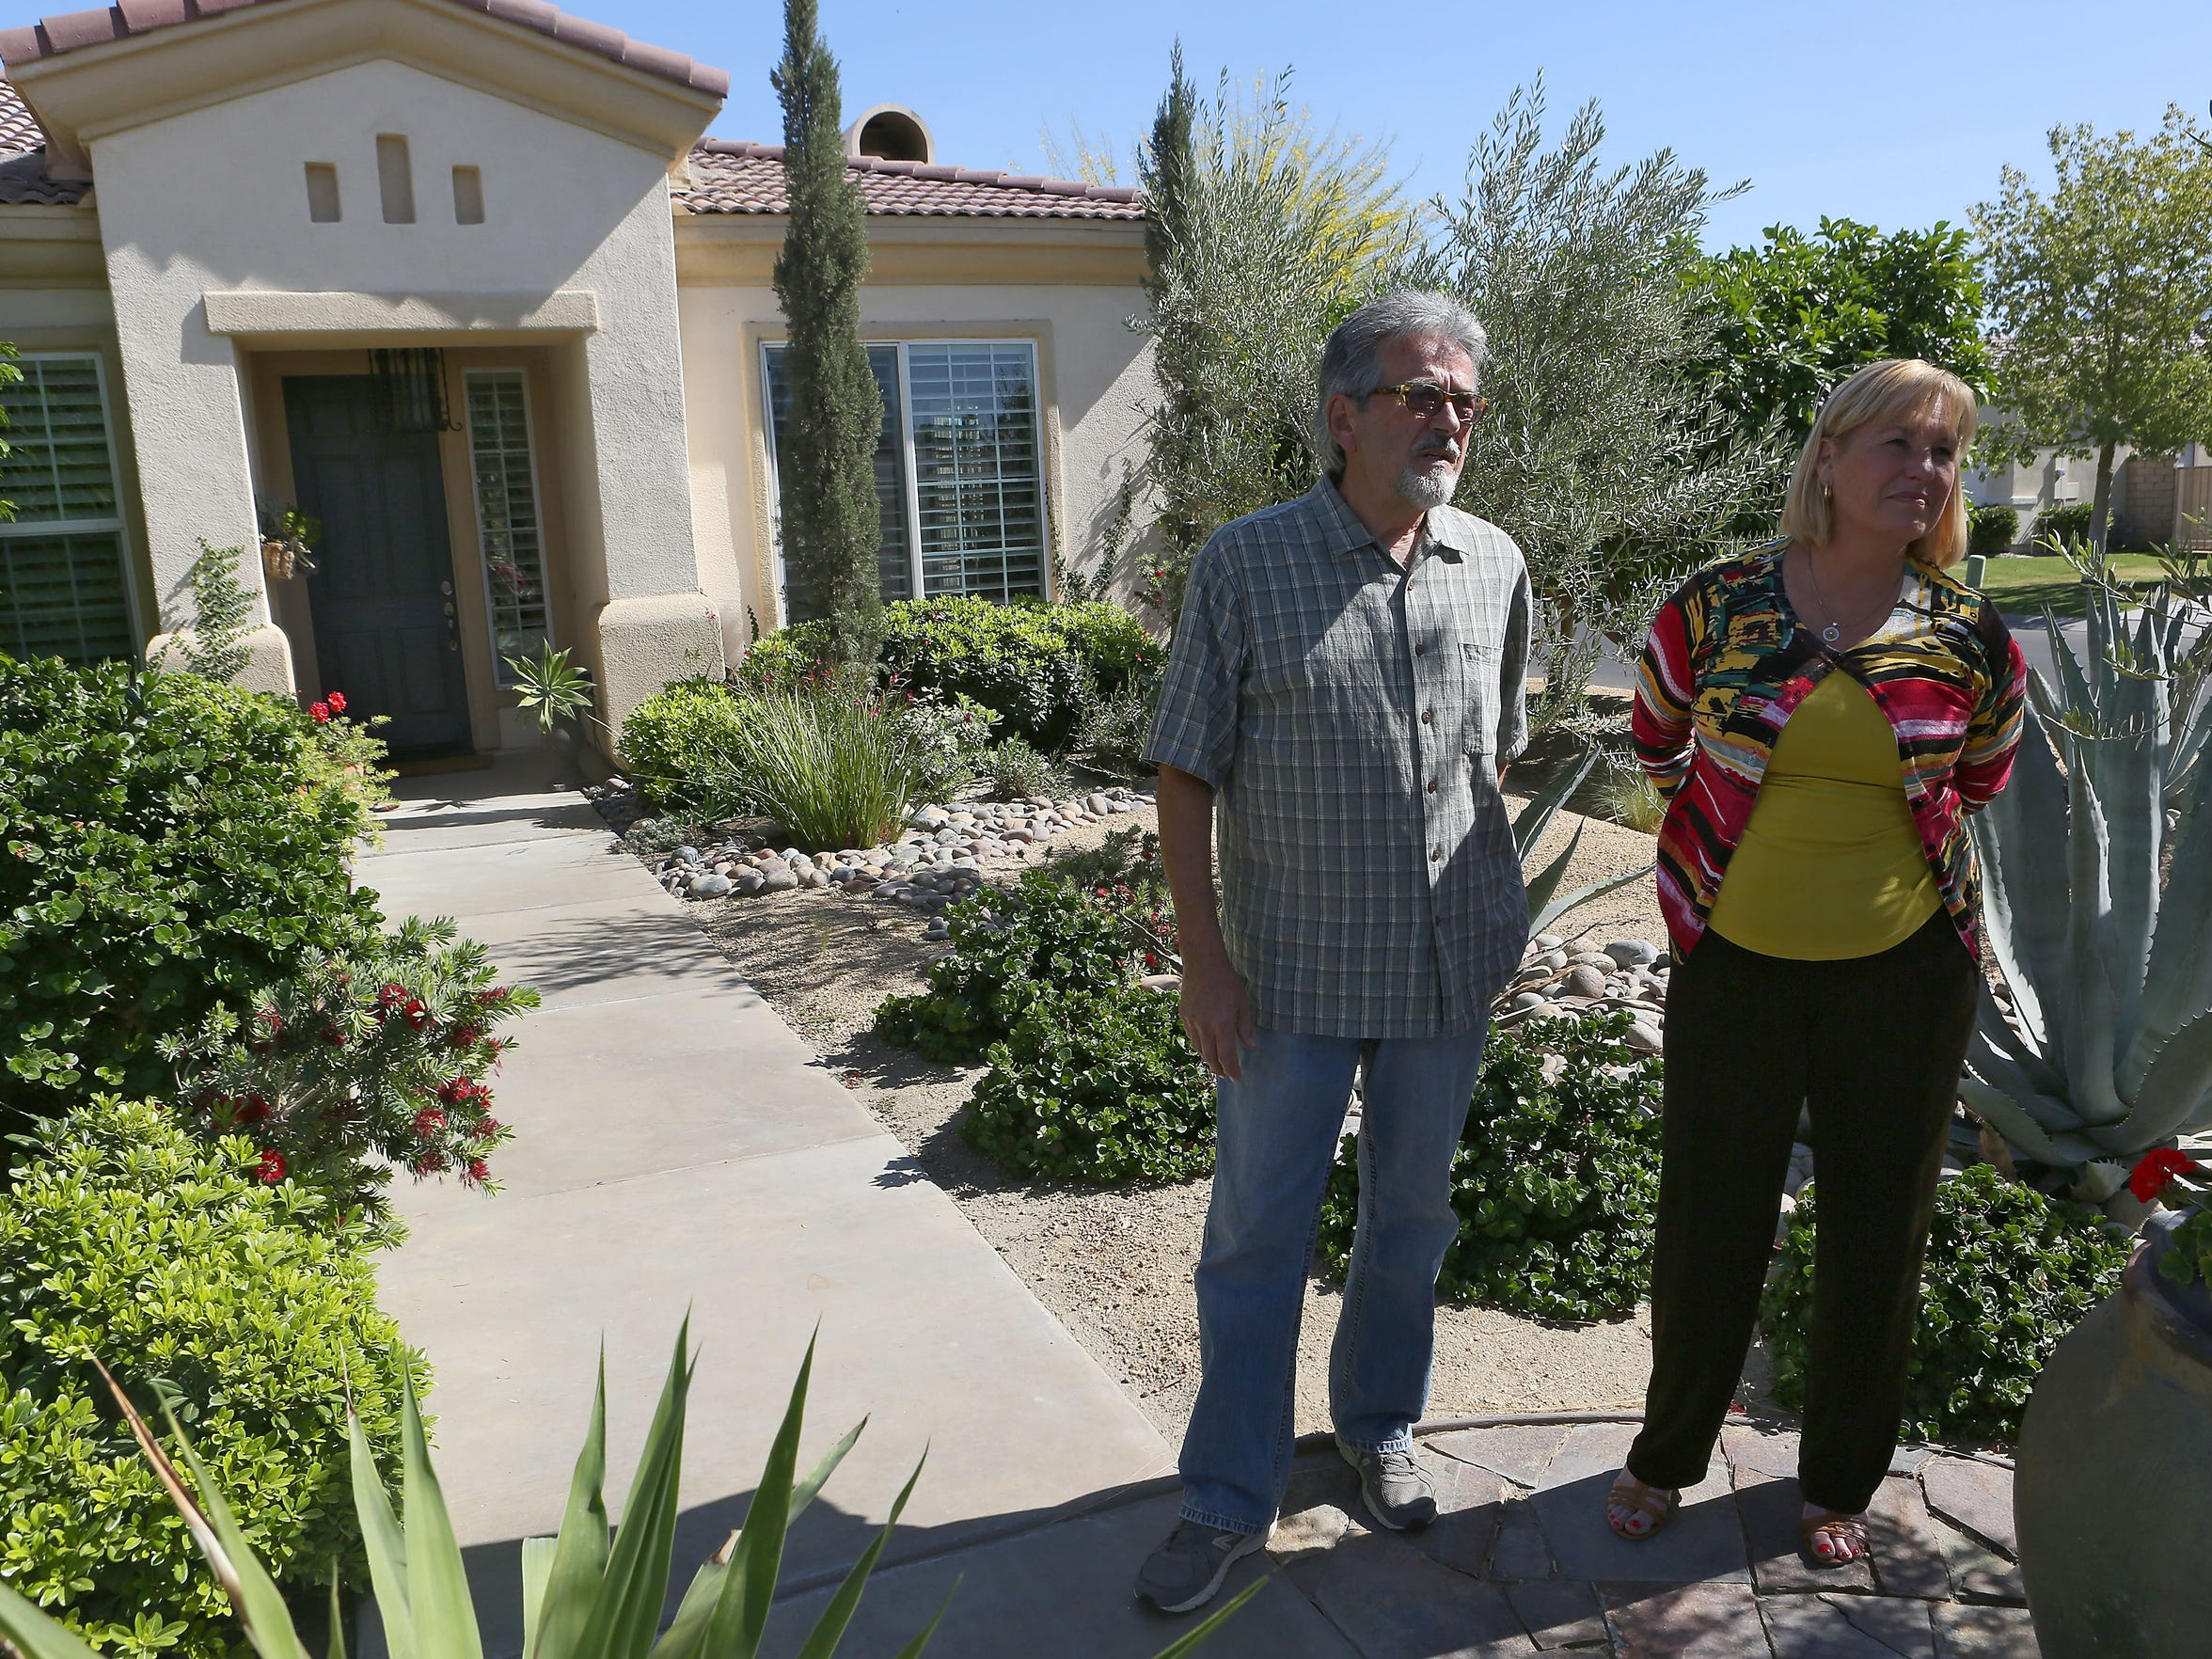 Sharon and Richard O'Donnell discuss their water usage